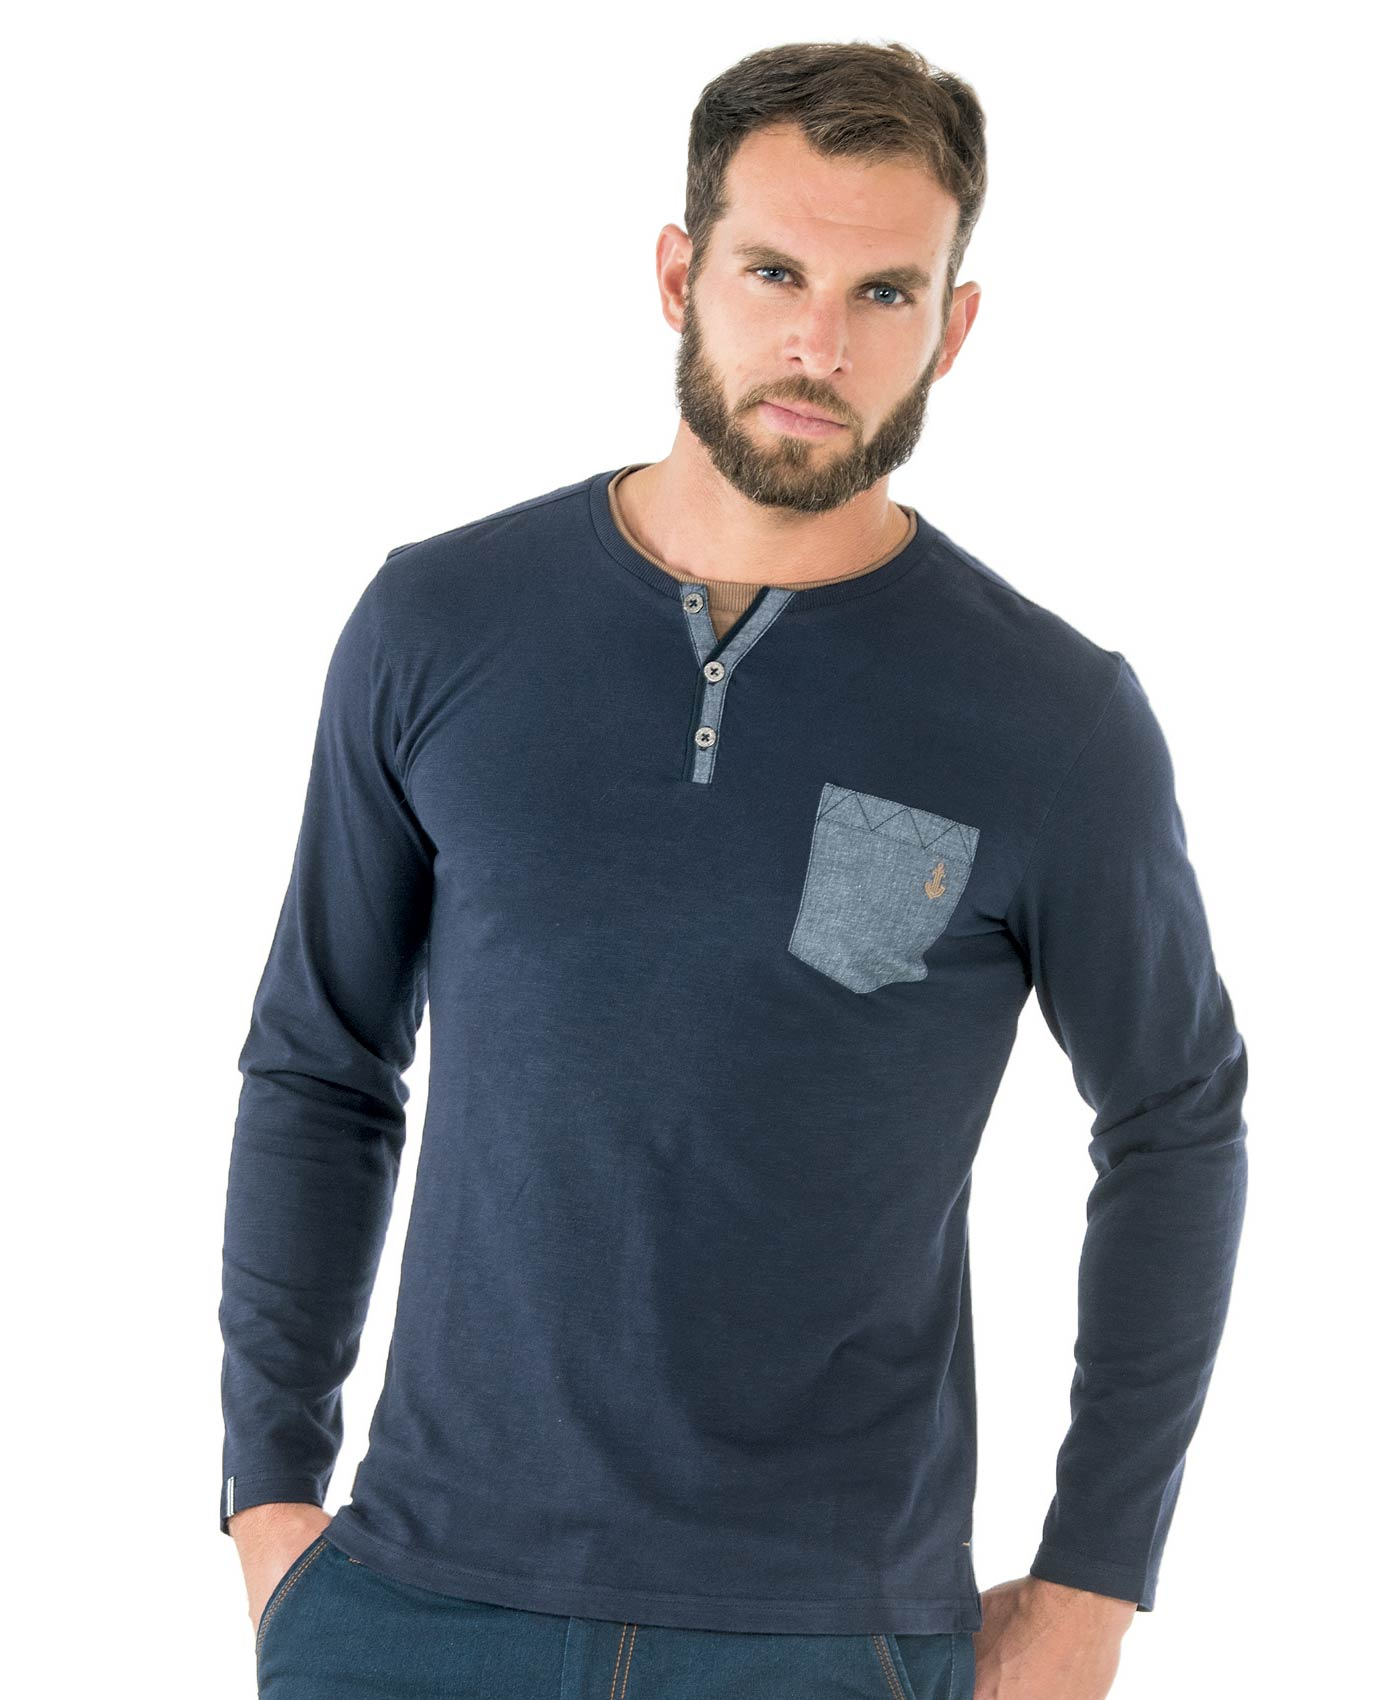 Tee-shirt manches longues homme bleu nuit - Mode marine Homme